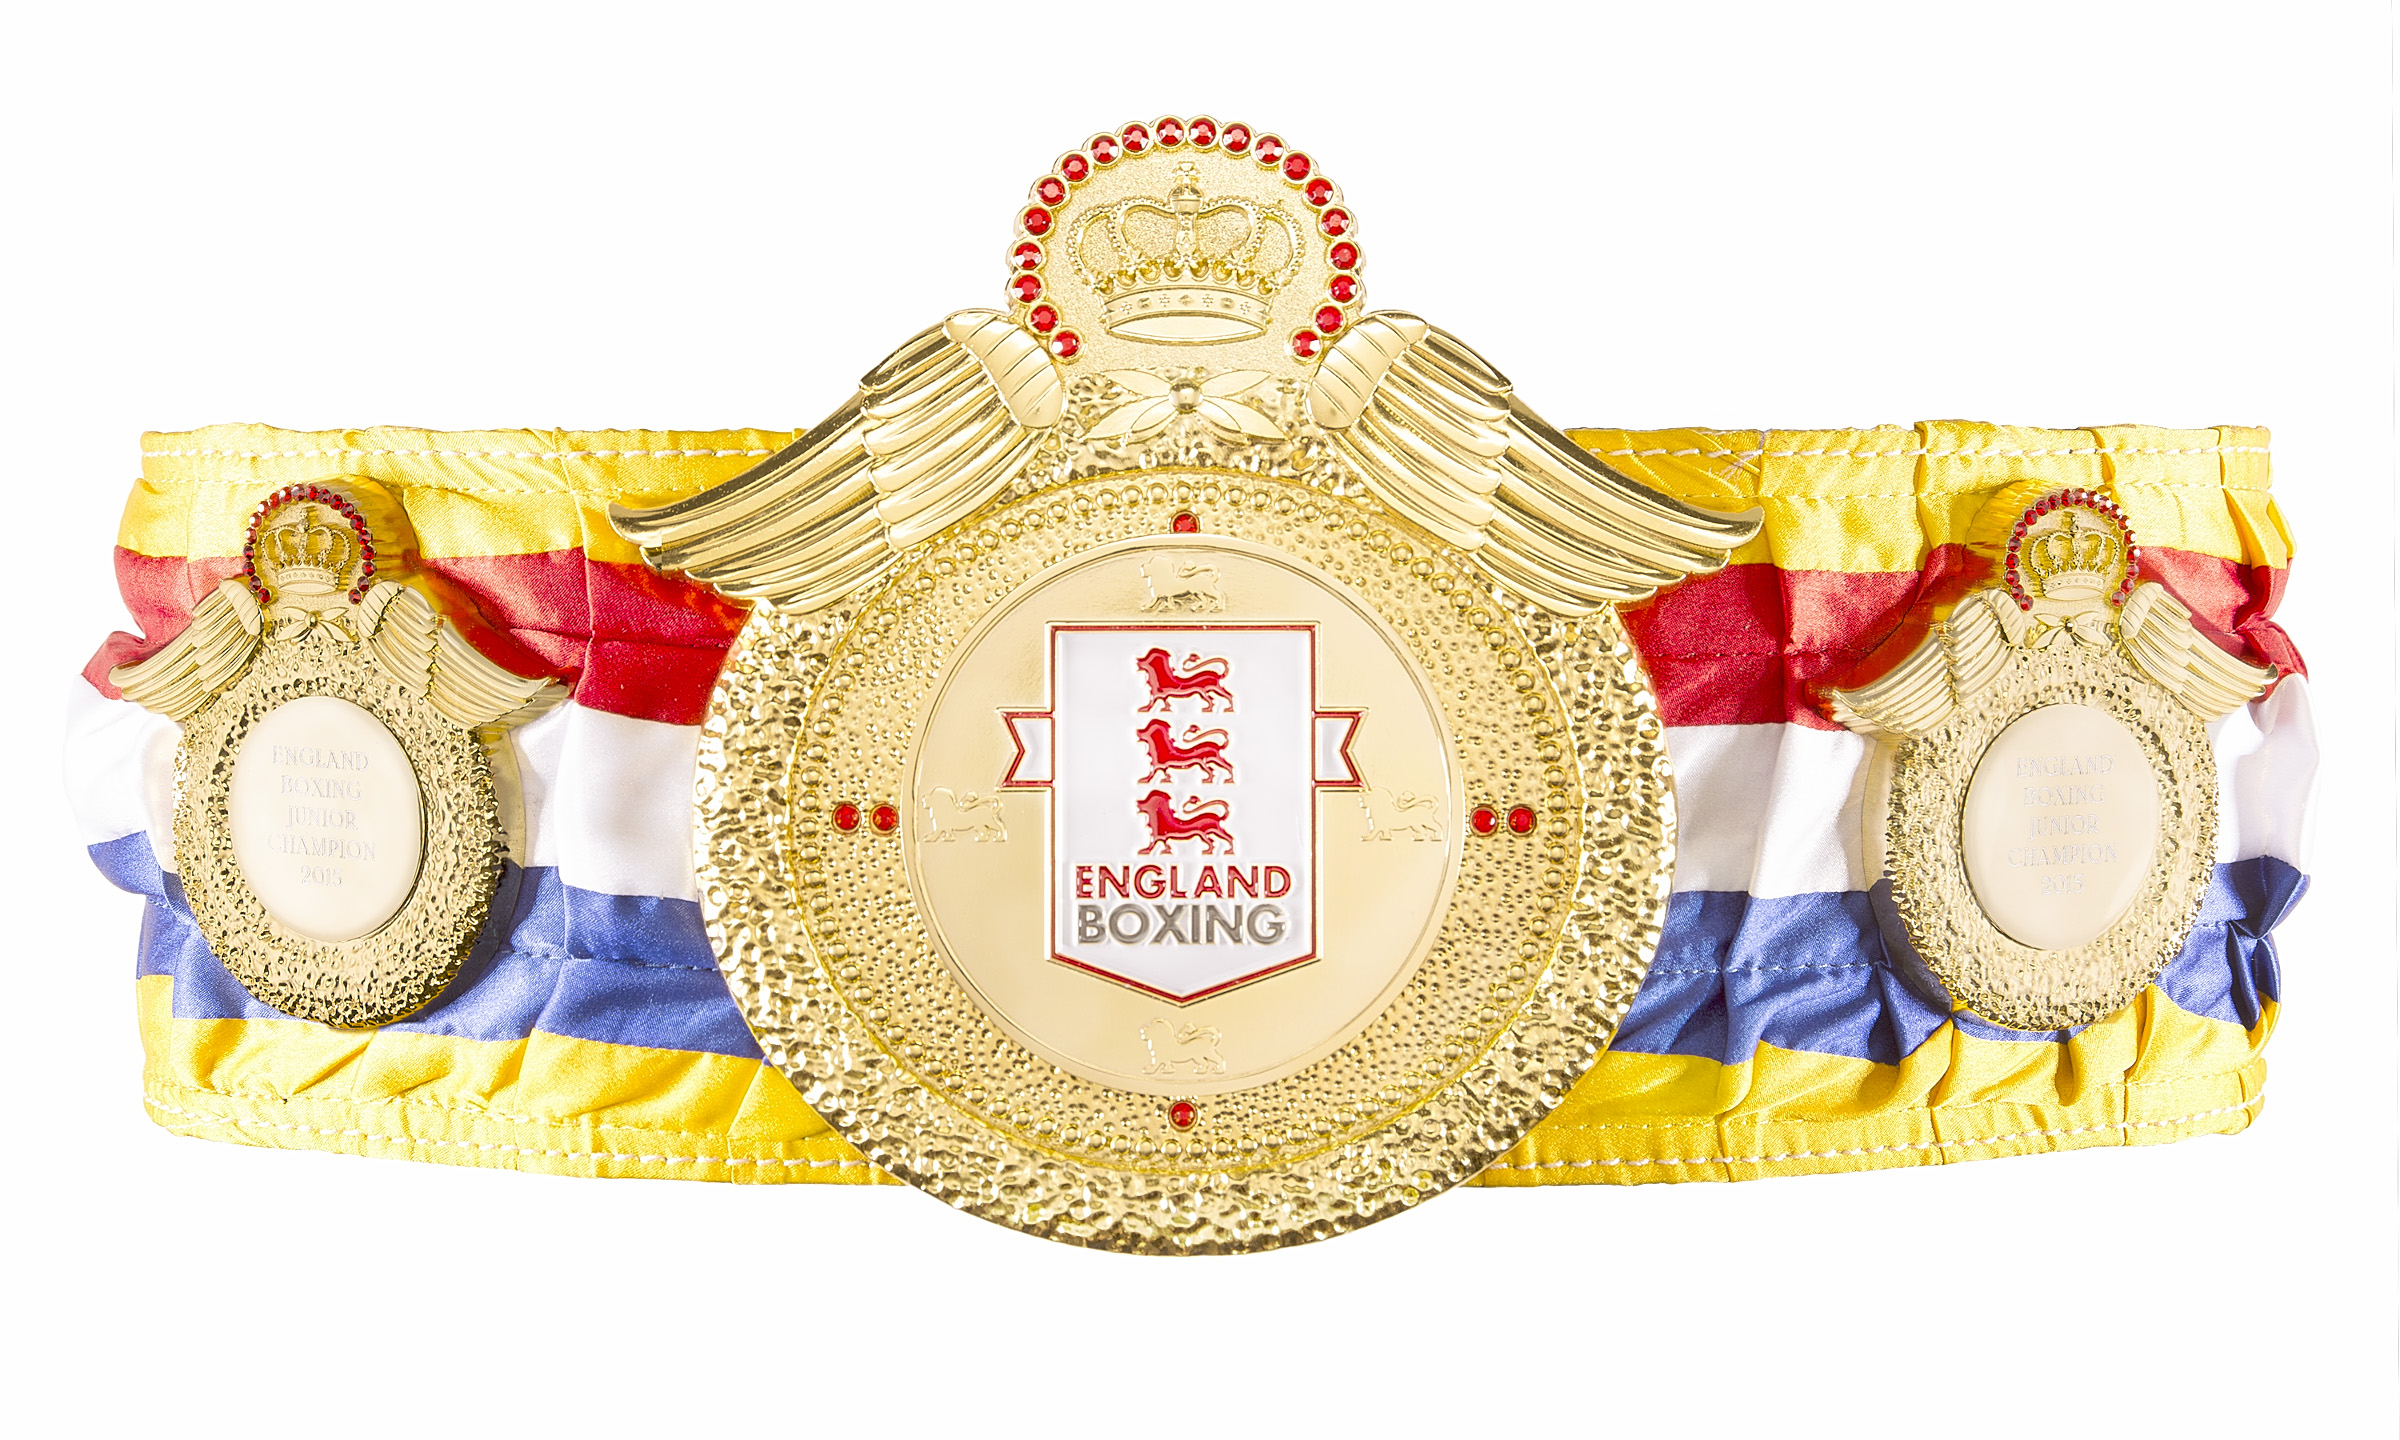 BOXING CHAMPIONSHIP BELT